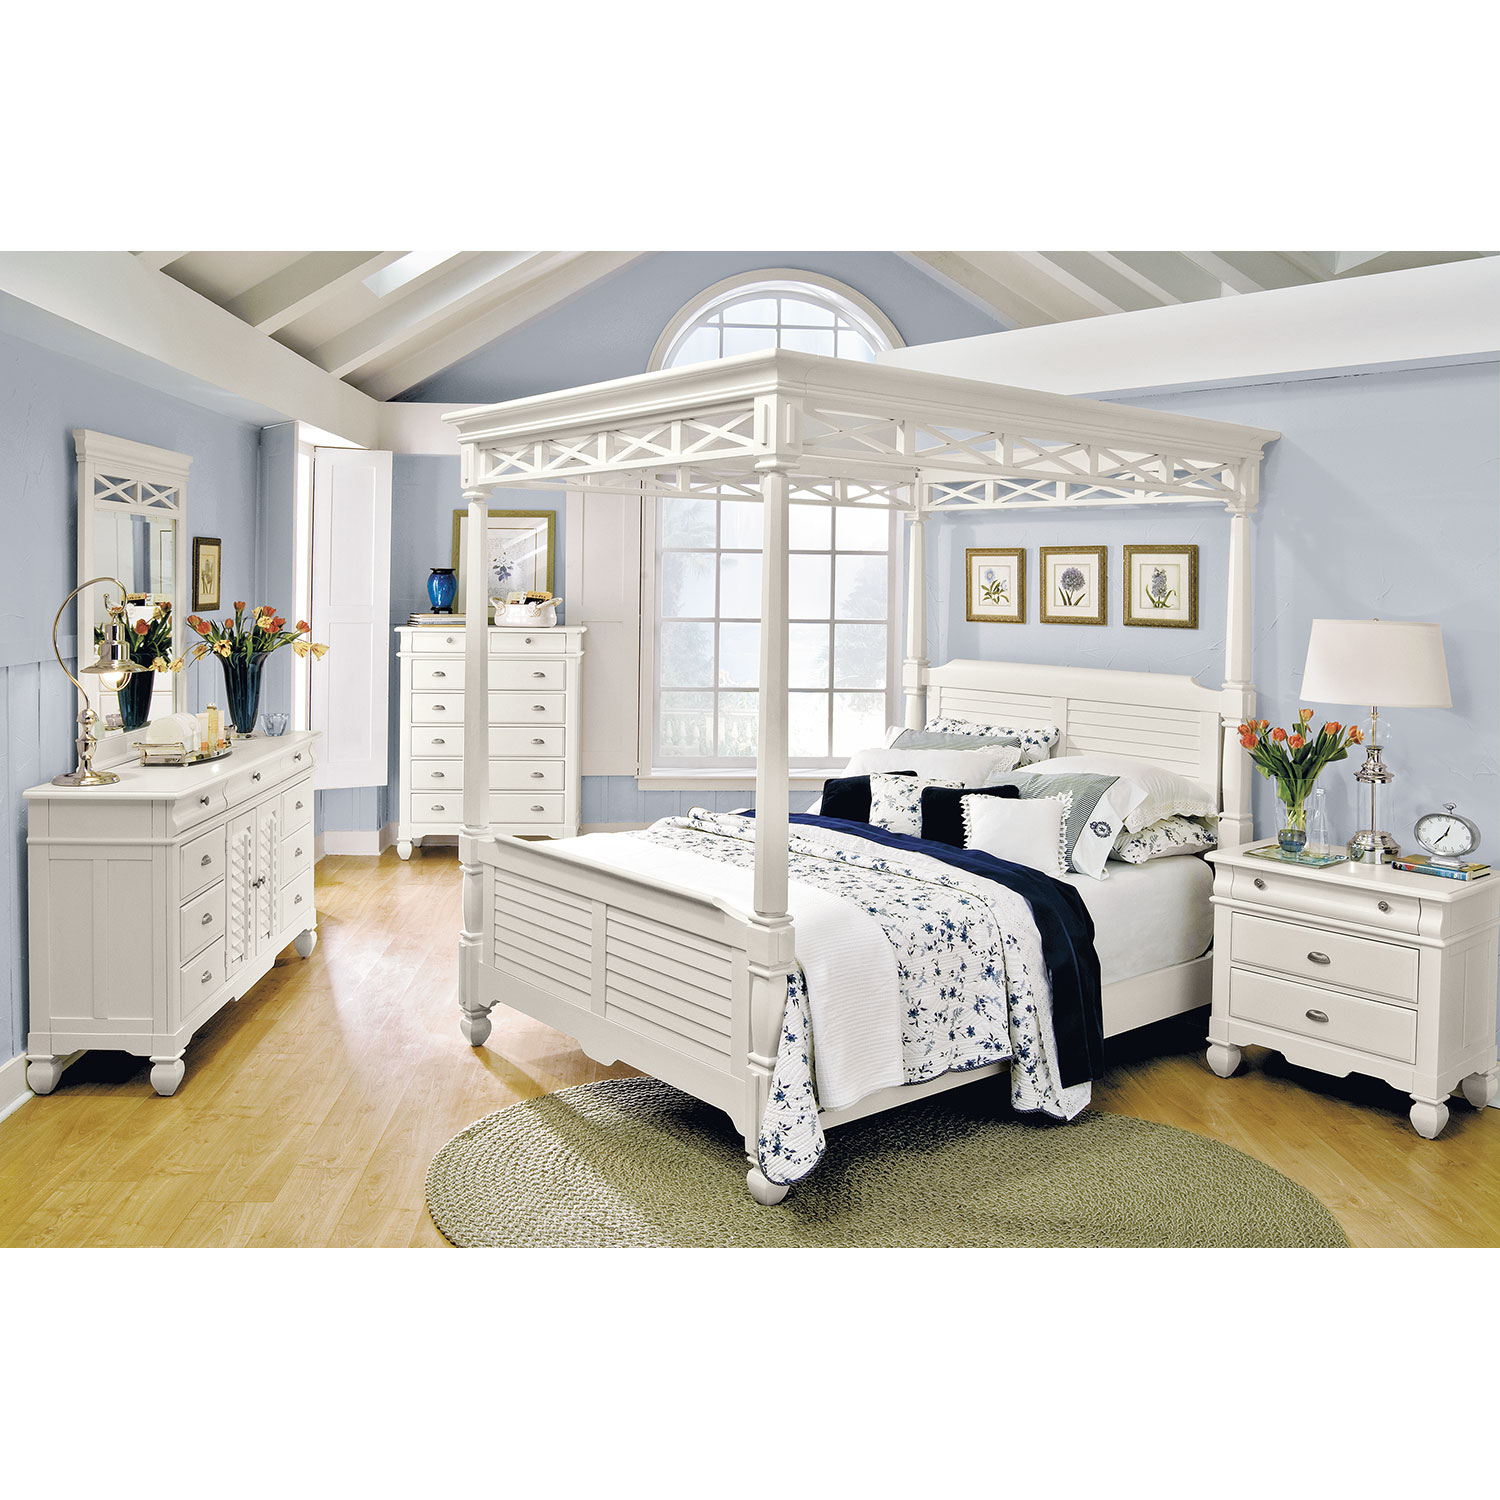 Canopy Bedroom Sets Girls plantation cove 5-piece king canopy bedroom set - white | value